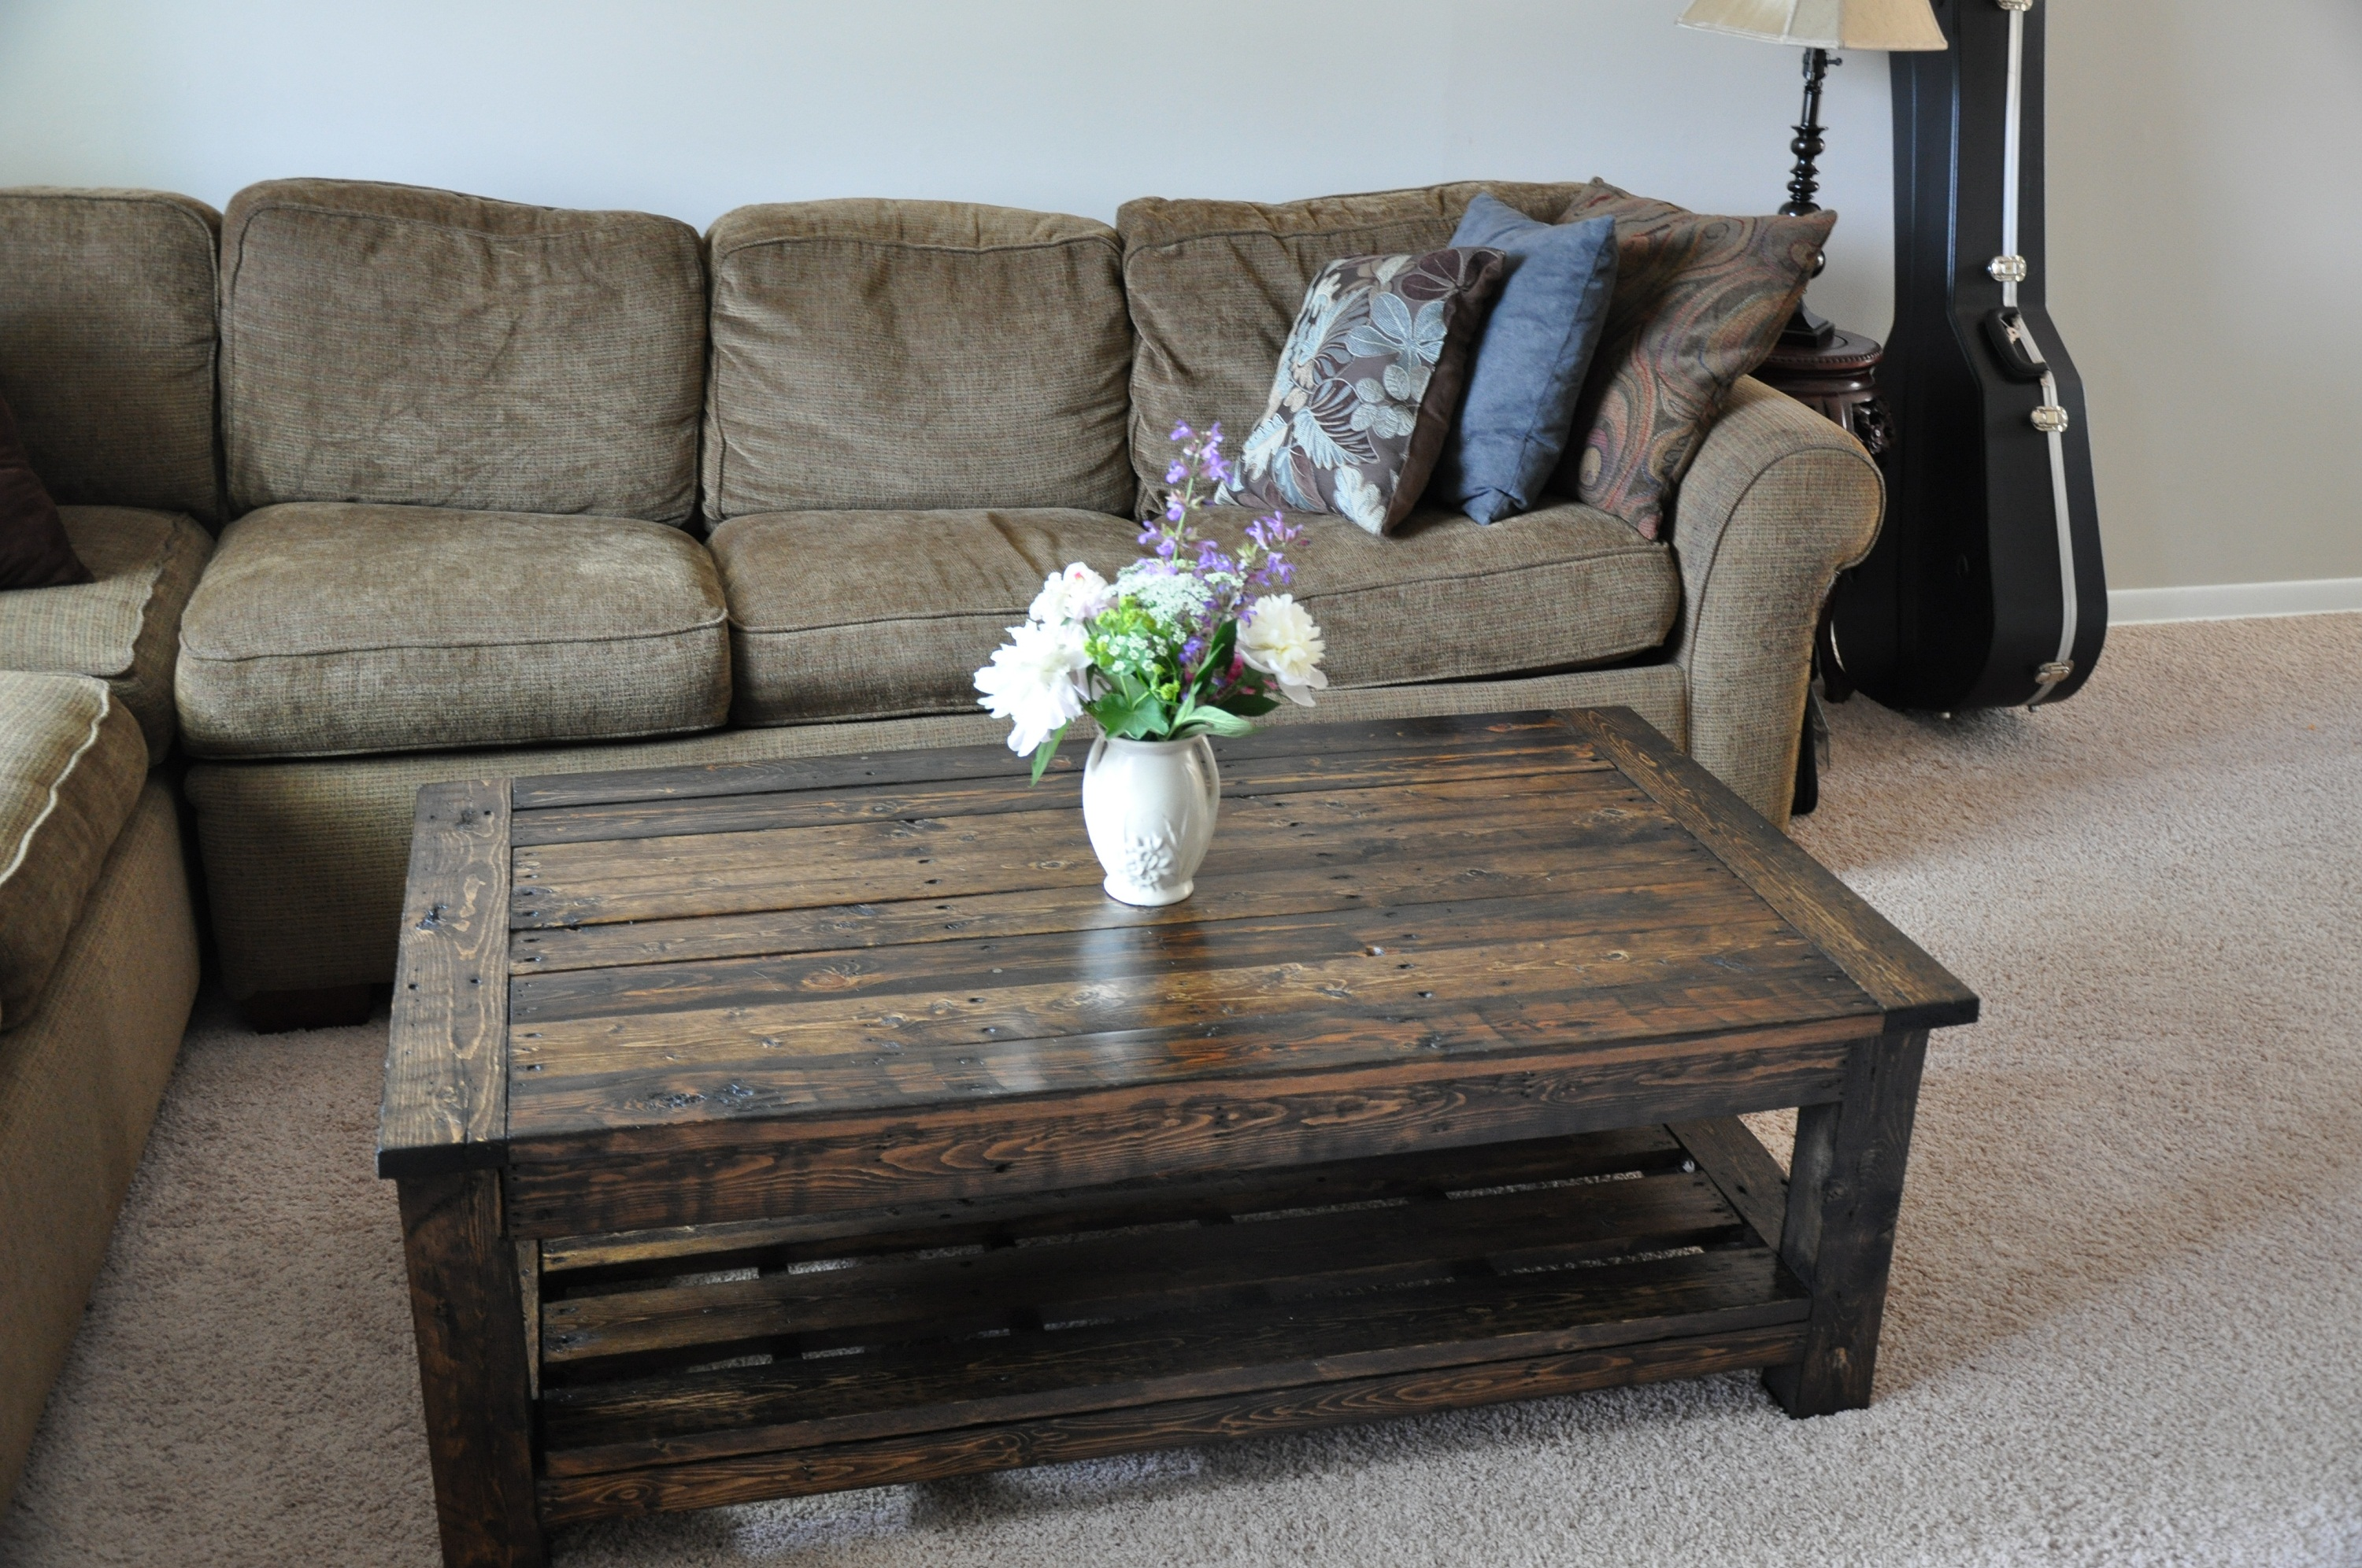 18 DIY Pallet Coffee Tables | Guide Patterns